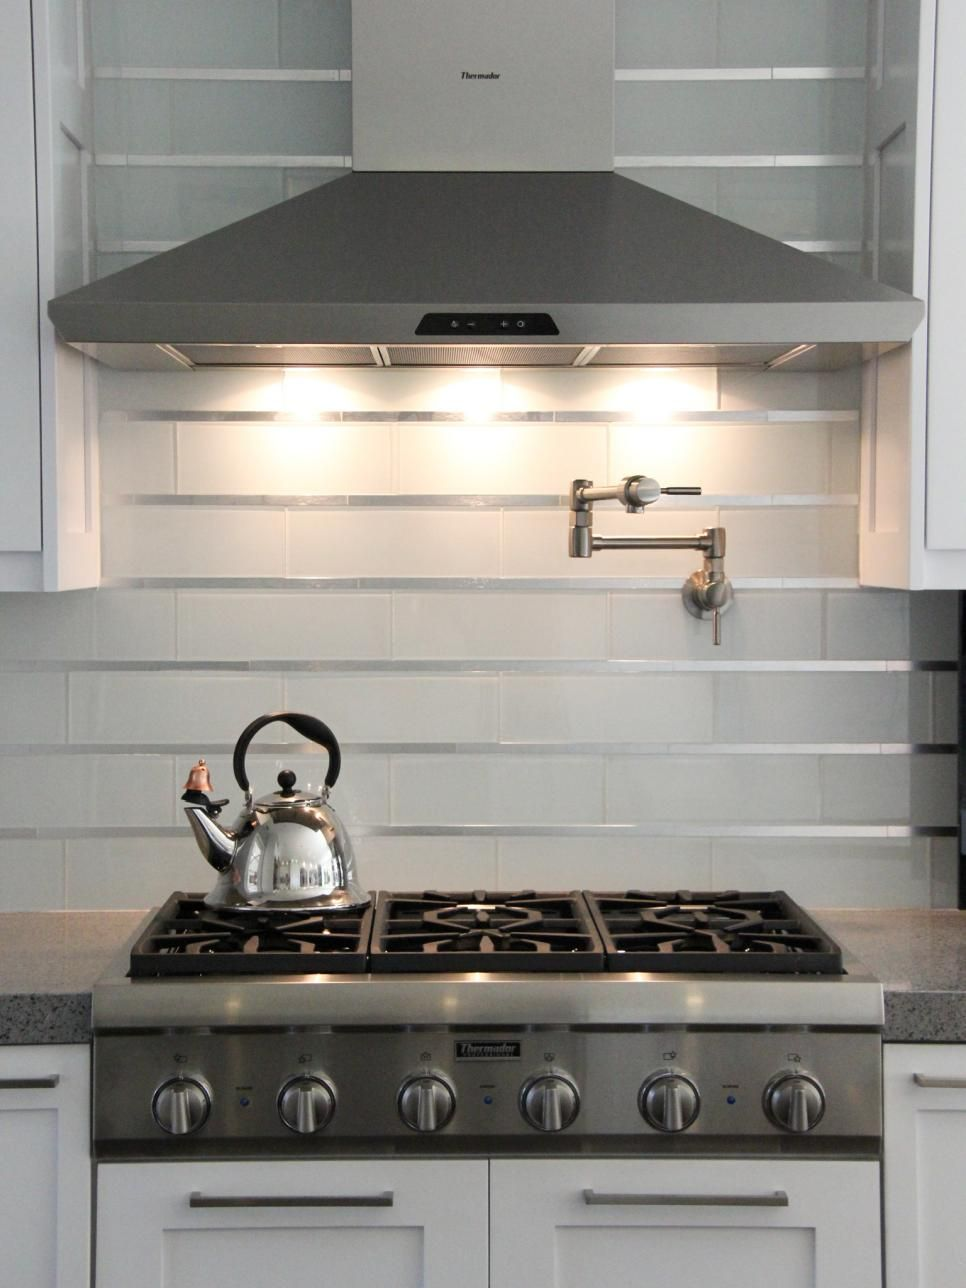 20 stainless steel kitchen backsplashes - Stainless Steel Kitchen Ideas